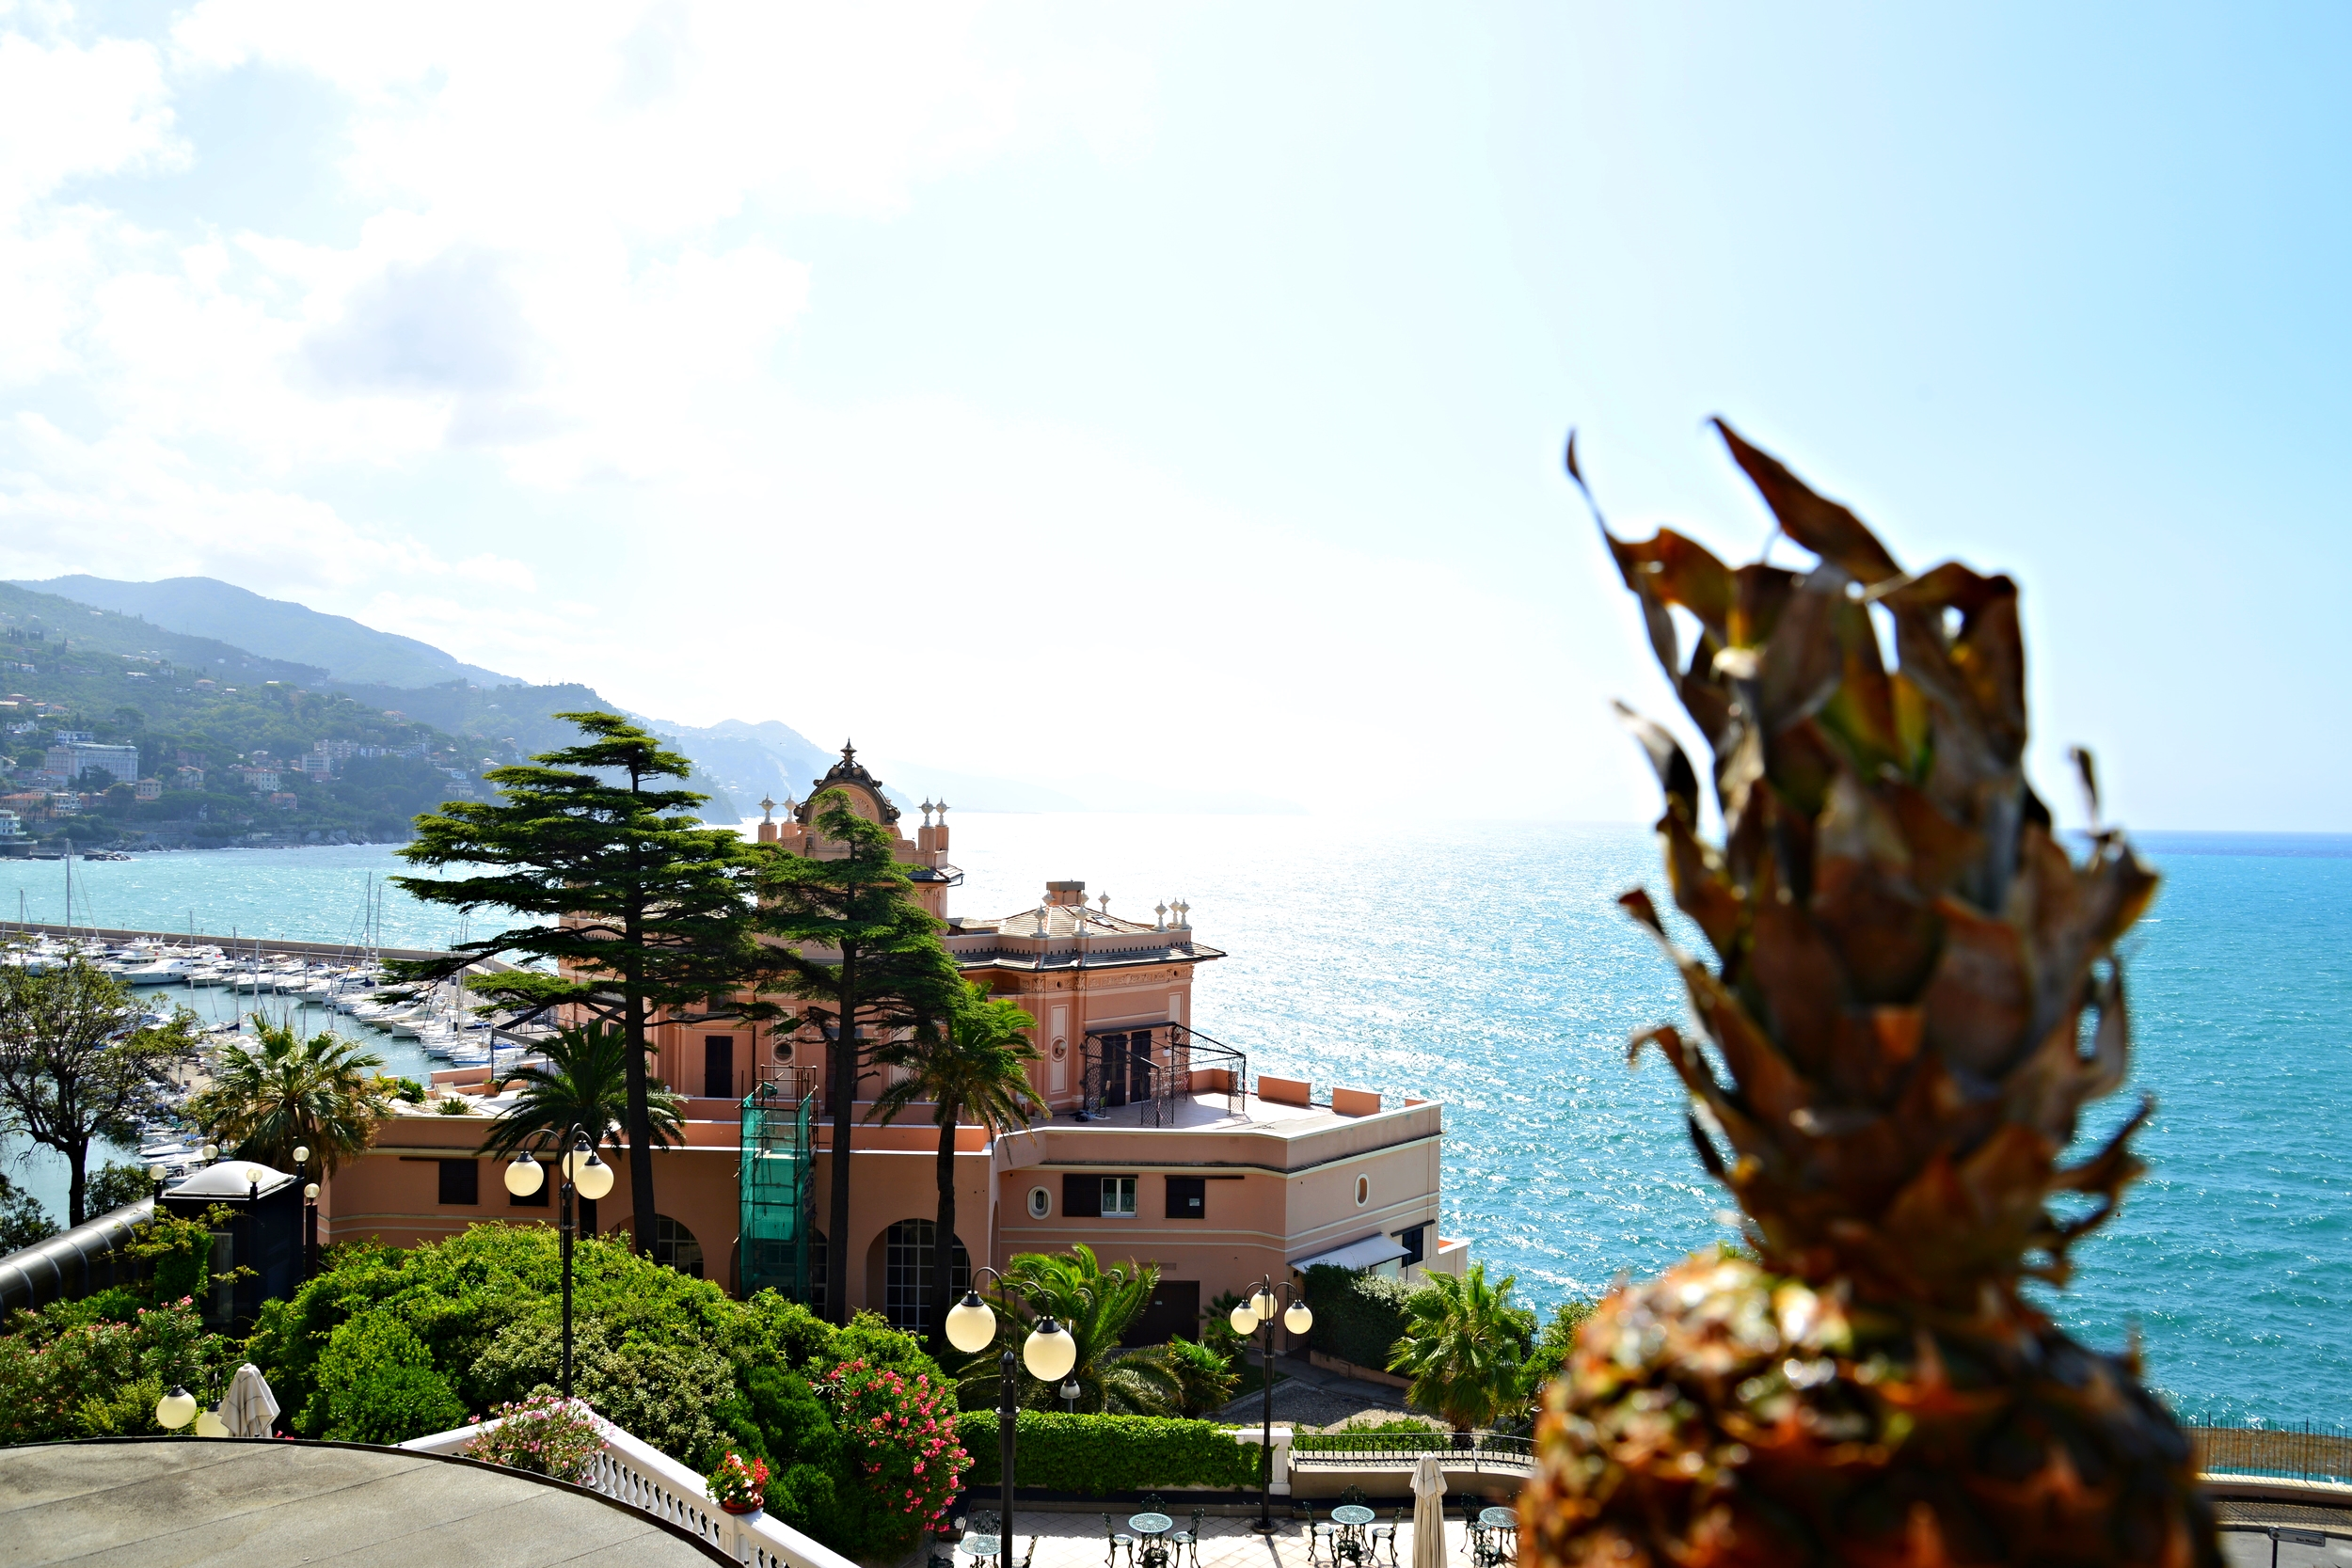 View from my room was just breathtaking, I stayed at this gorgeous hotel in the municipality of Rapallo in Liguria called Excelsior Palace.